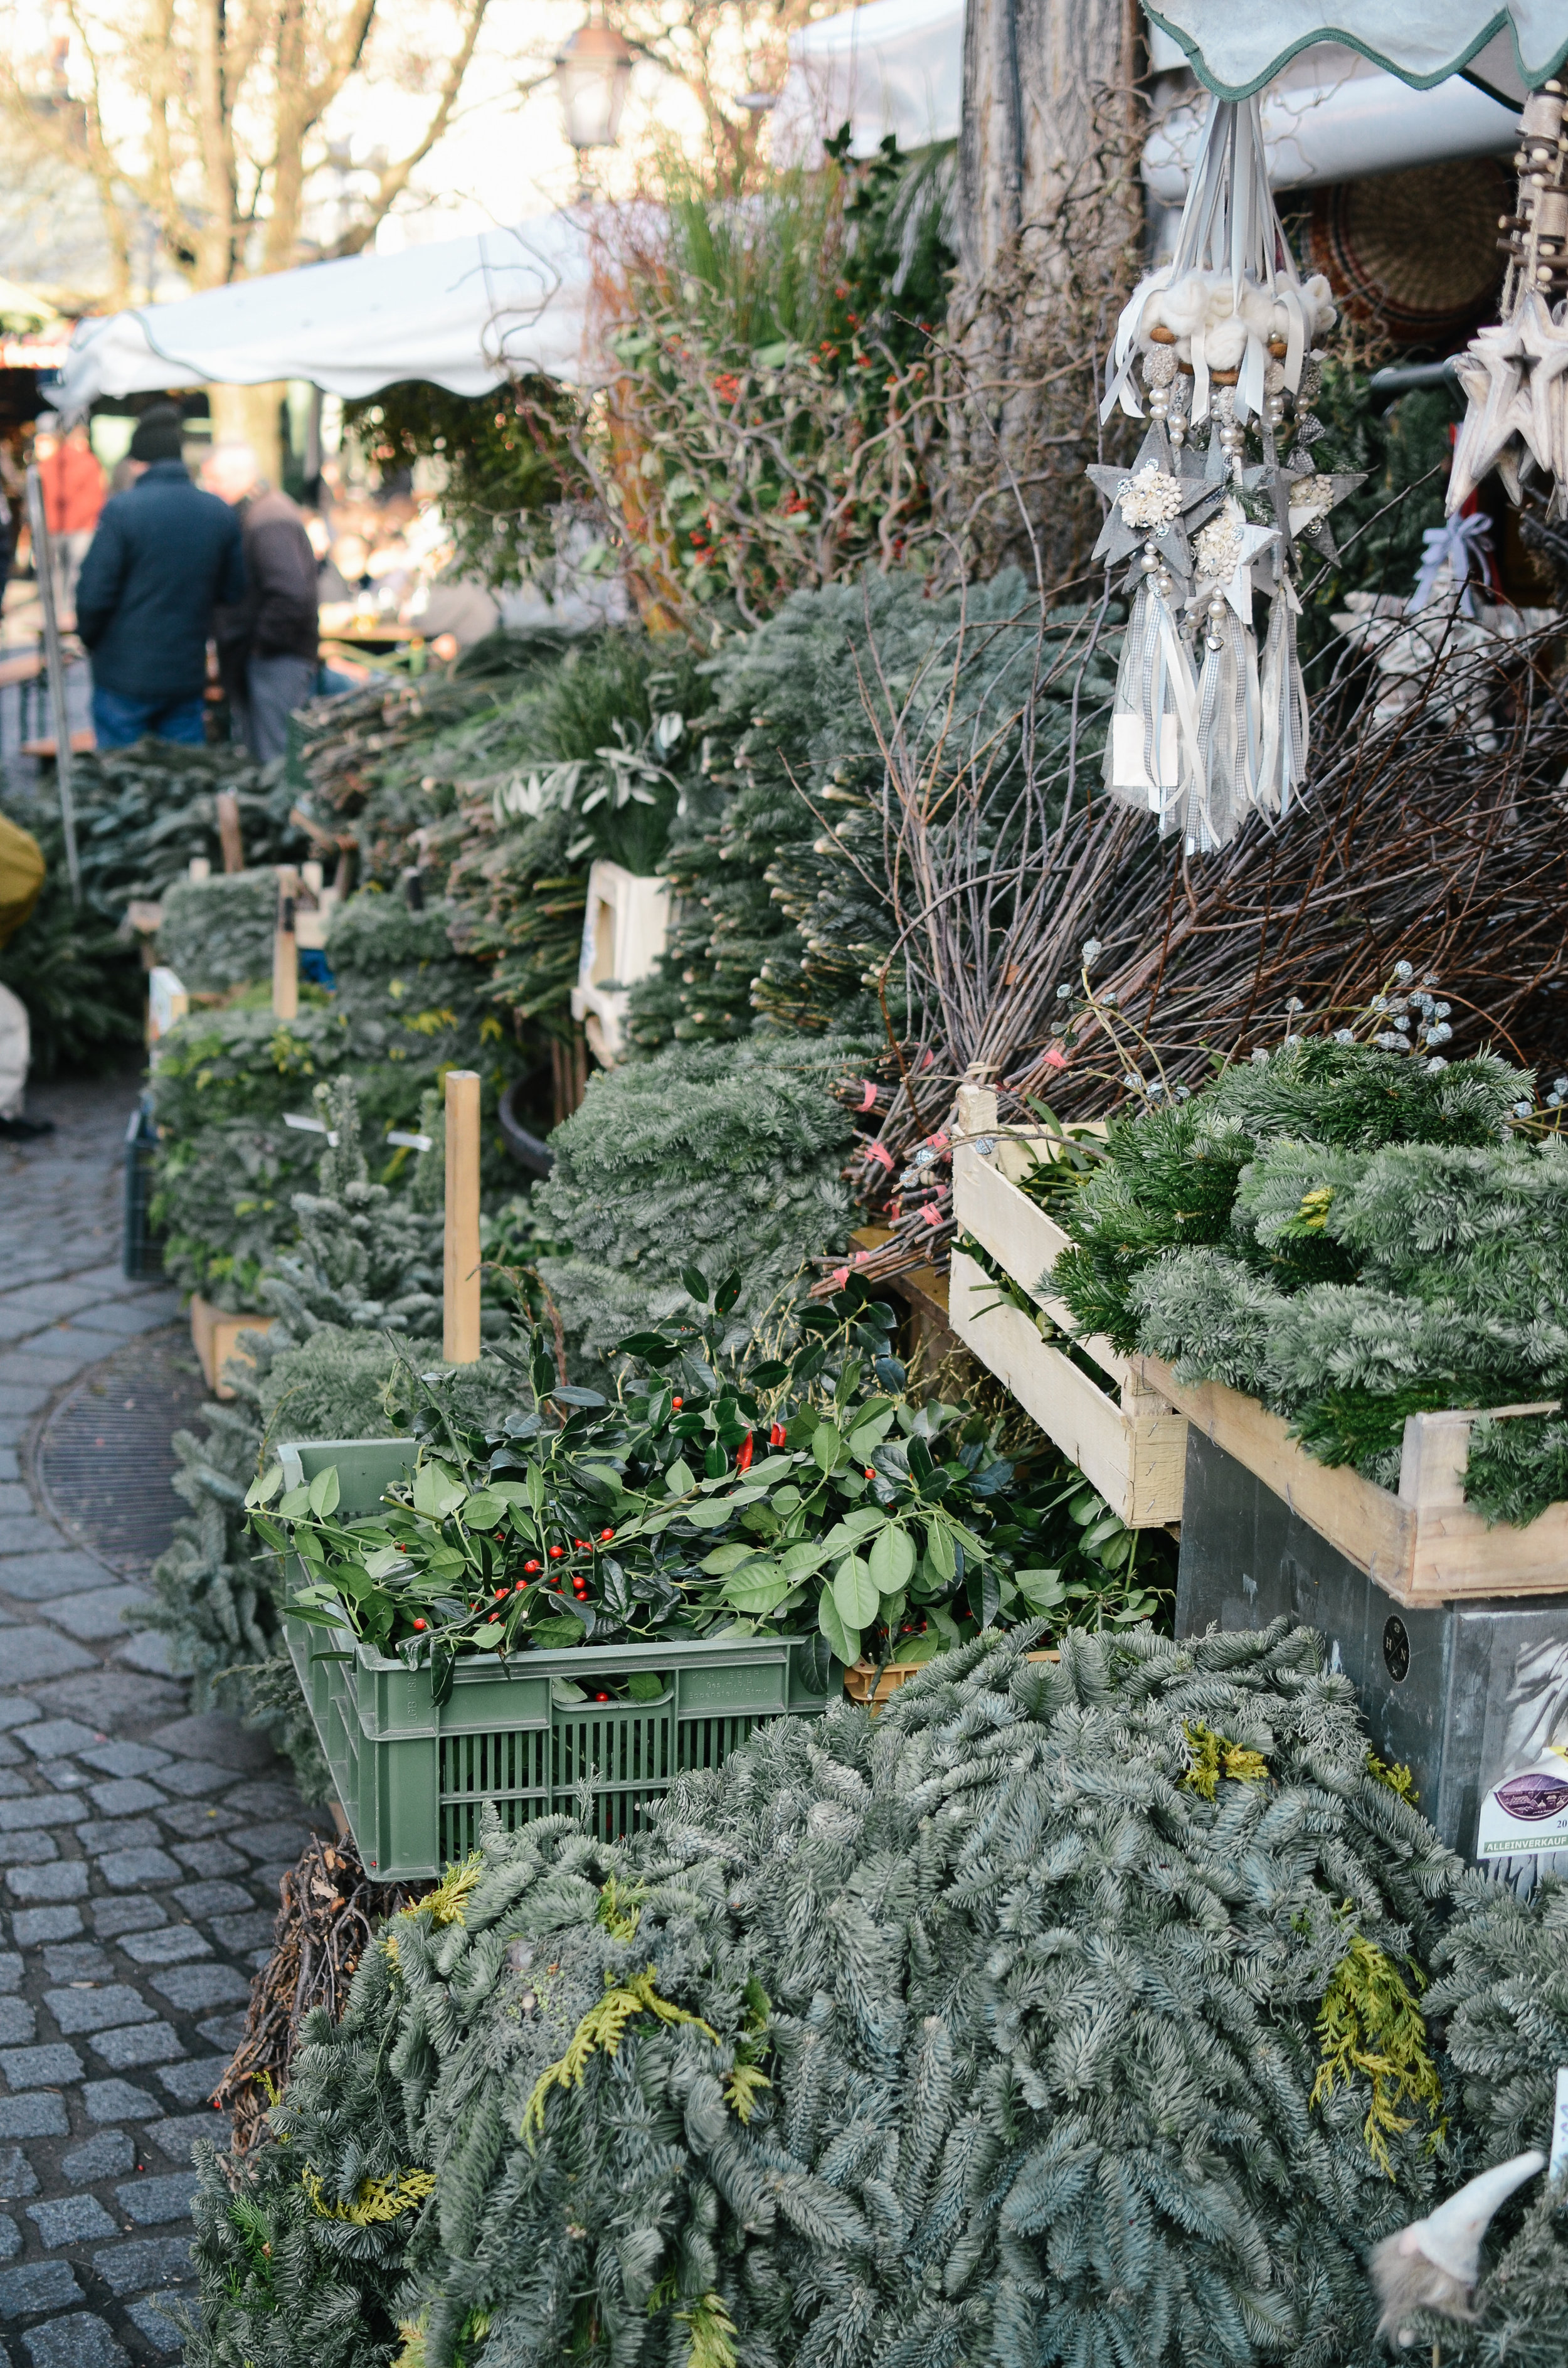 european-christmas-market-travel-guide-lifeonpine_DSC_0215.jpg